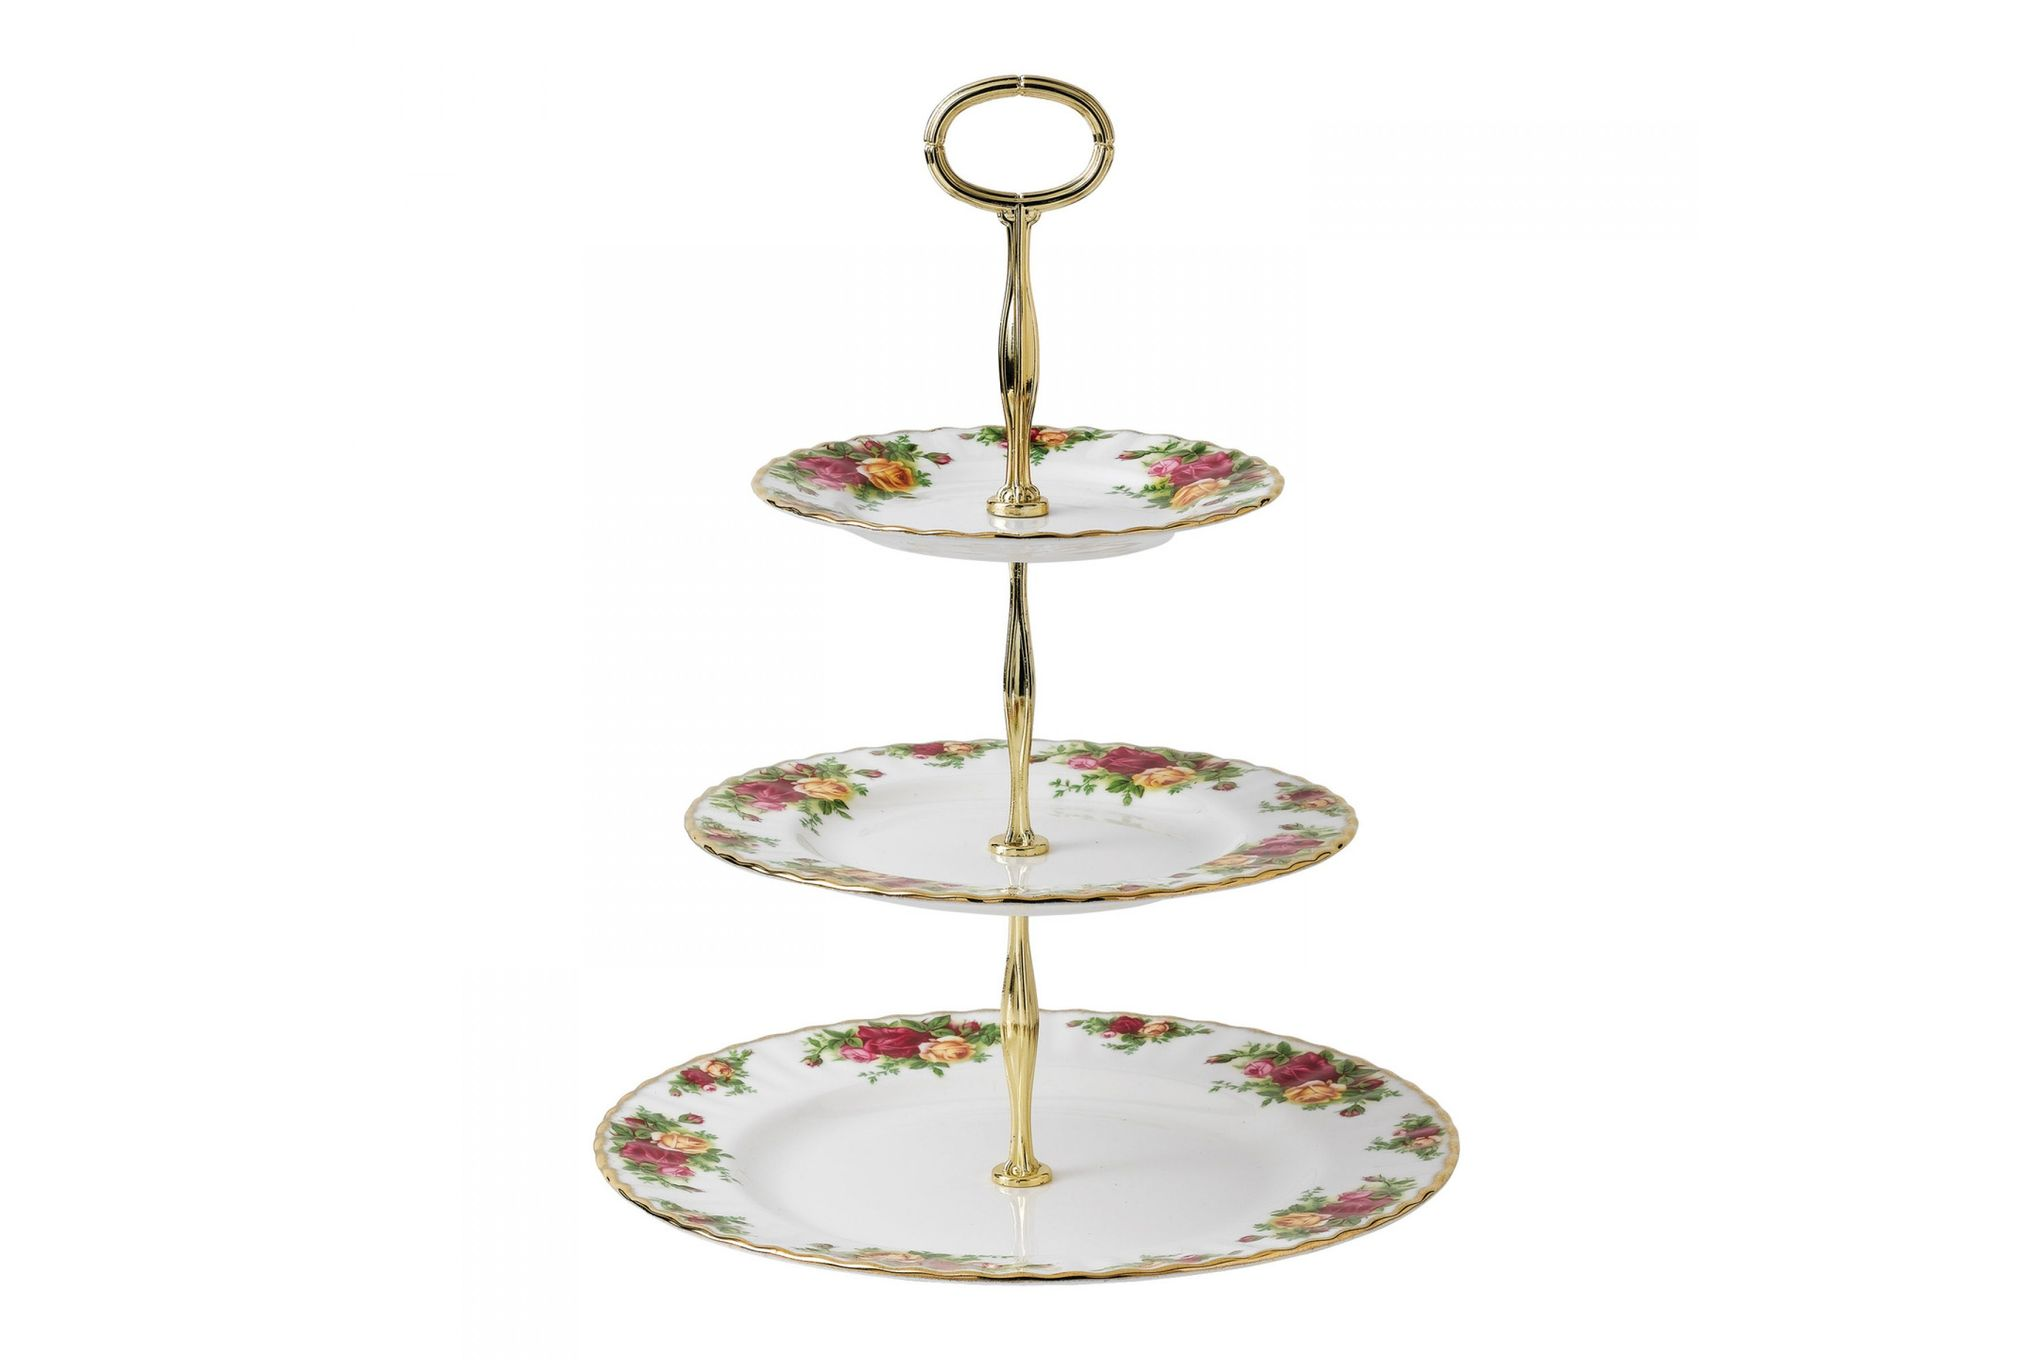 Royal Albert Old Country Roses - Made Abroad 3 Tier Cake Stand thumb 1